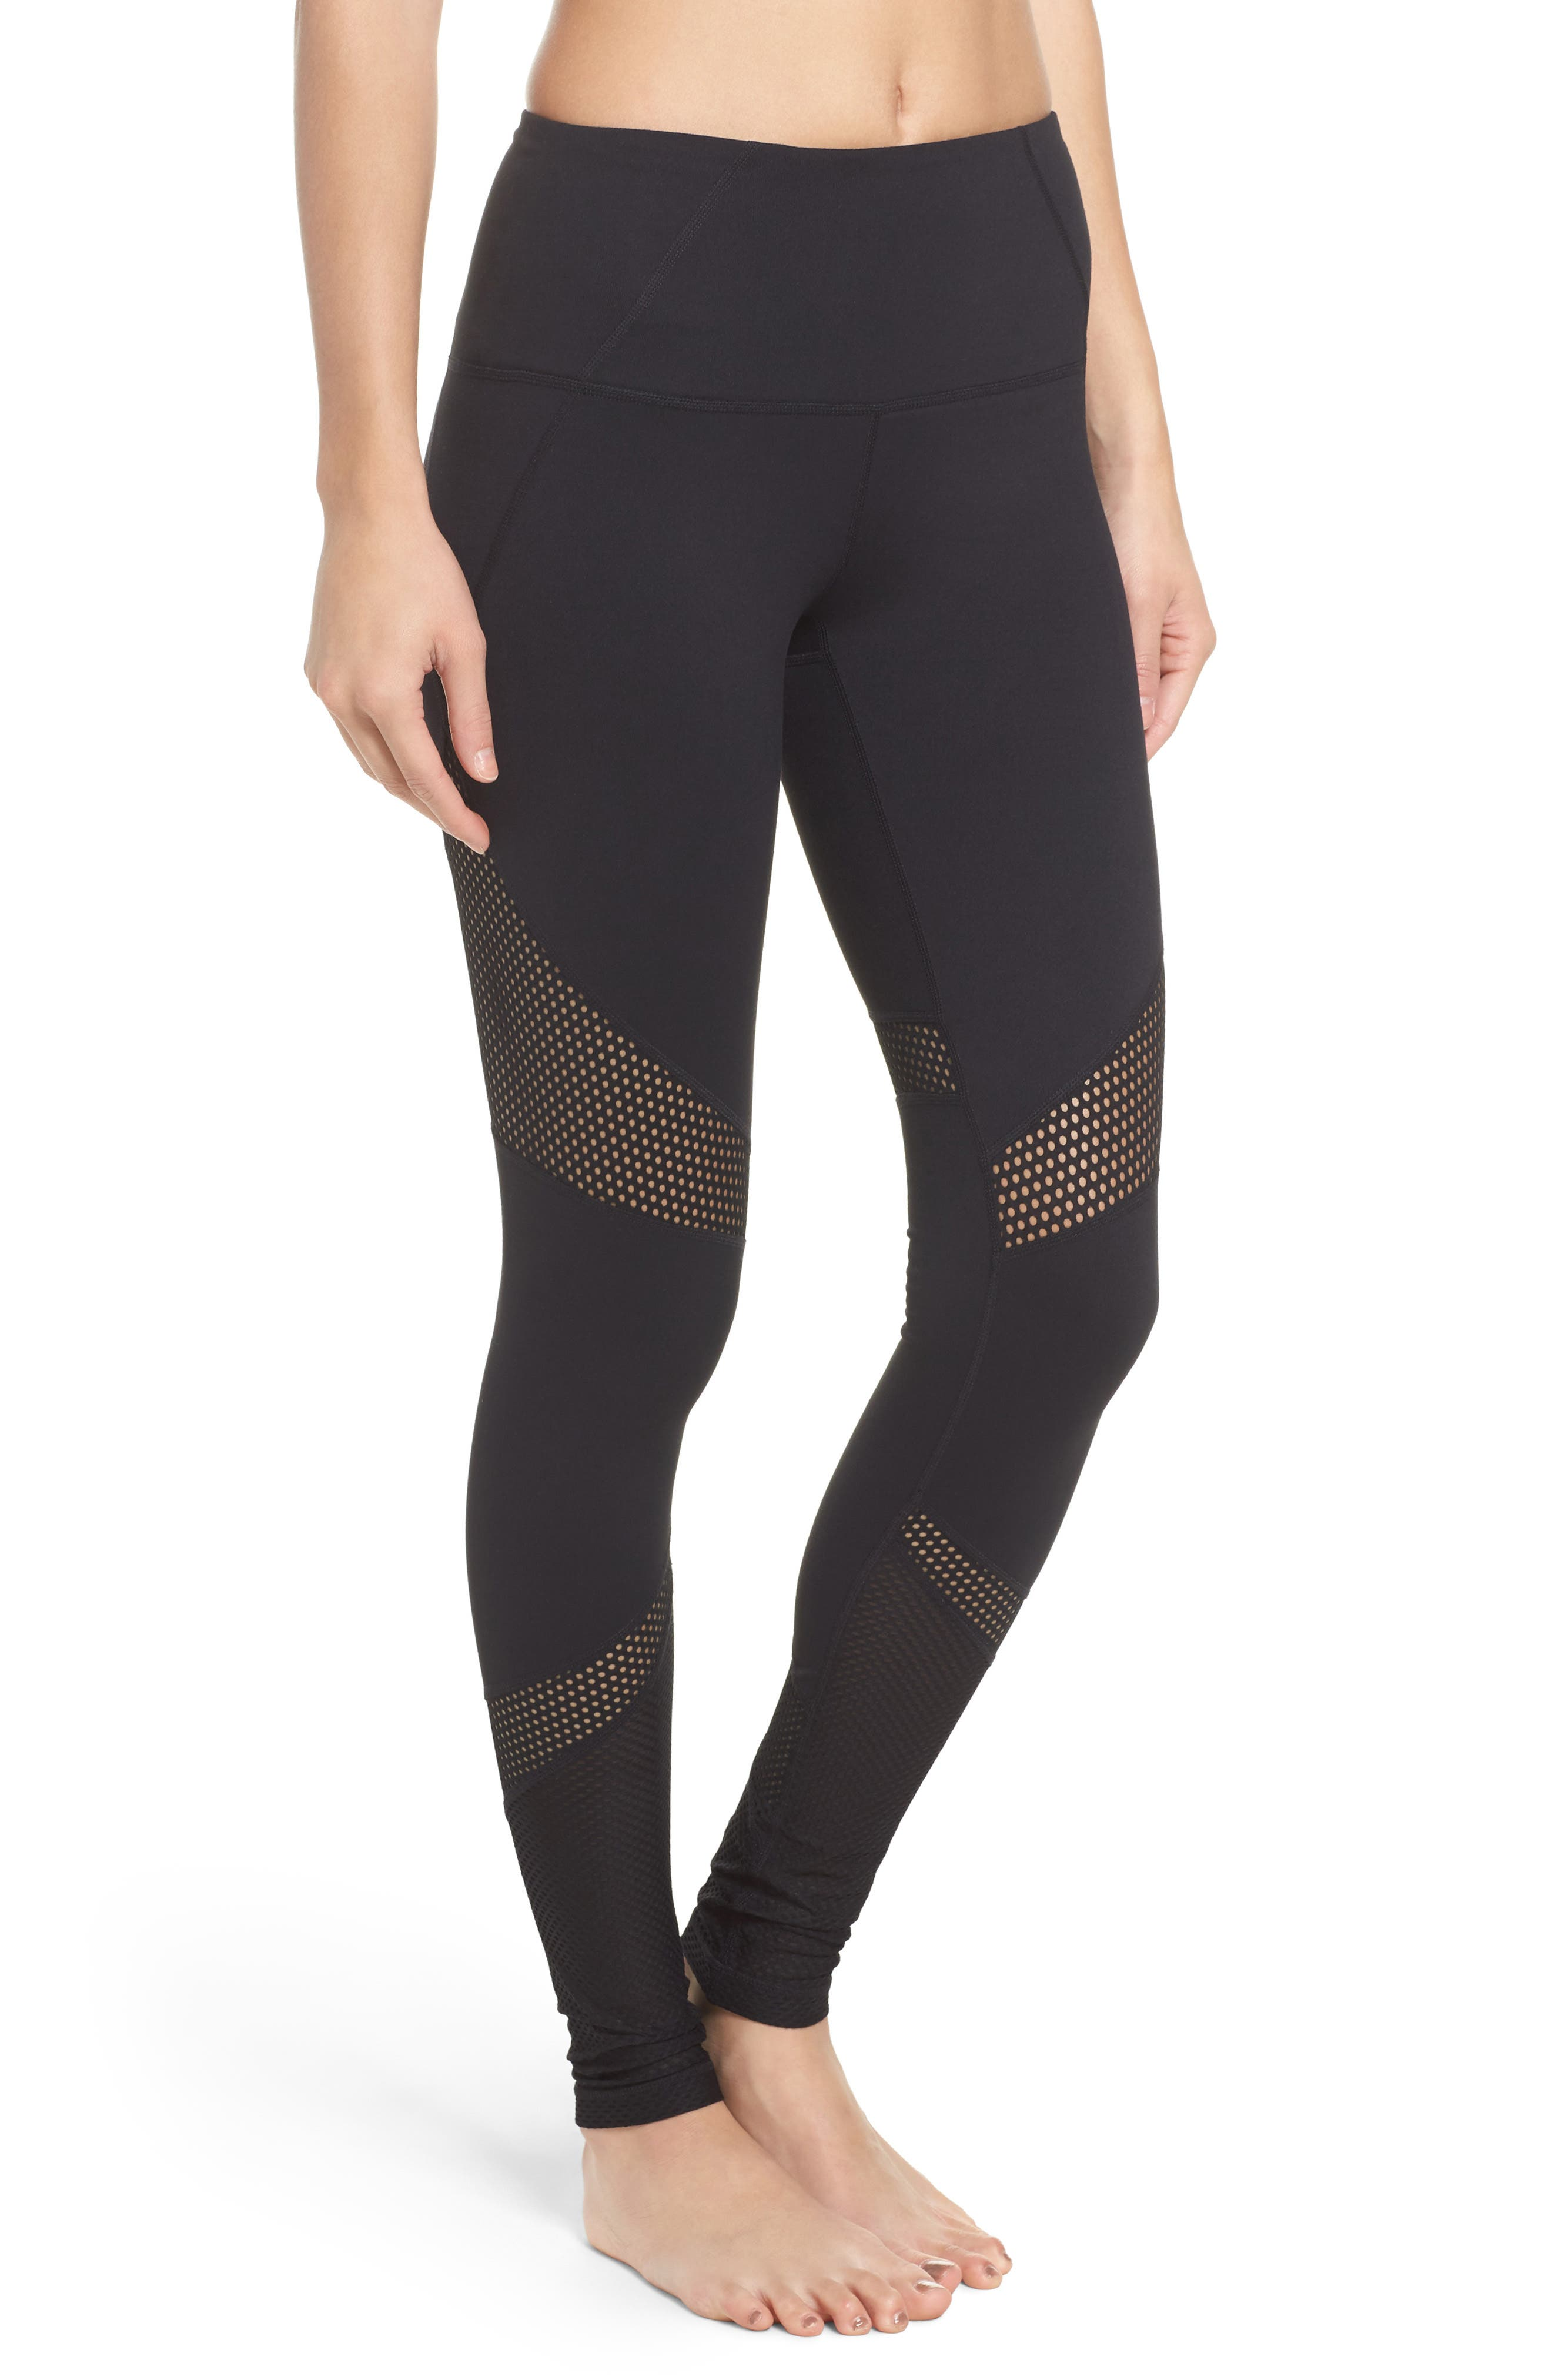 Out of Bounds High Waist Leggings,                             Main thumbnail 1, color,                             001